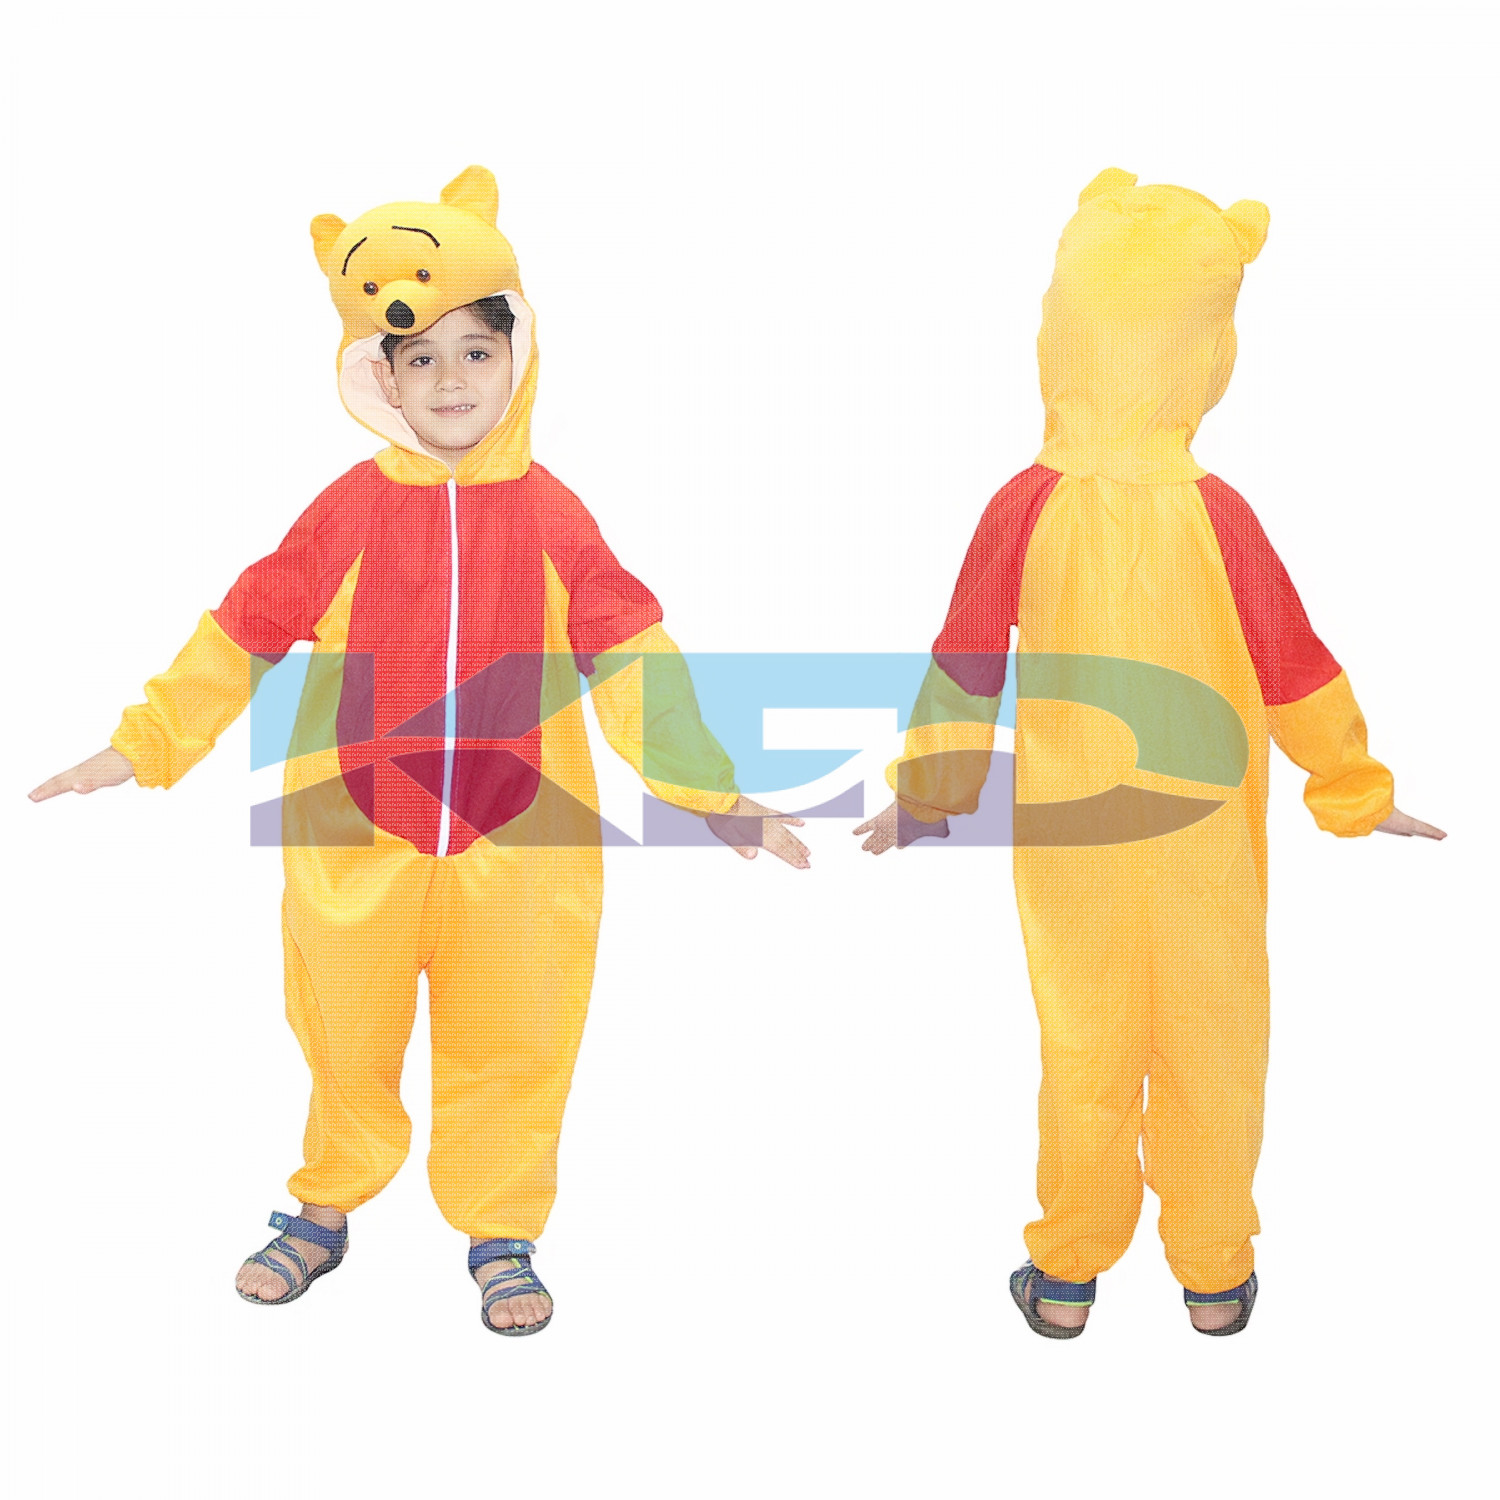 Pooh Fancy dress for kids,Diseny Cartoon Costume for Annual function/Theme Party/Stage Shows/Competition/Birthday Party Dress